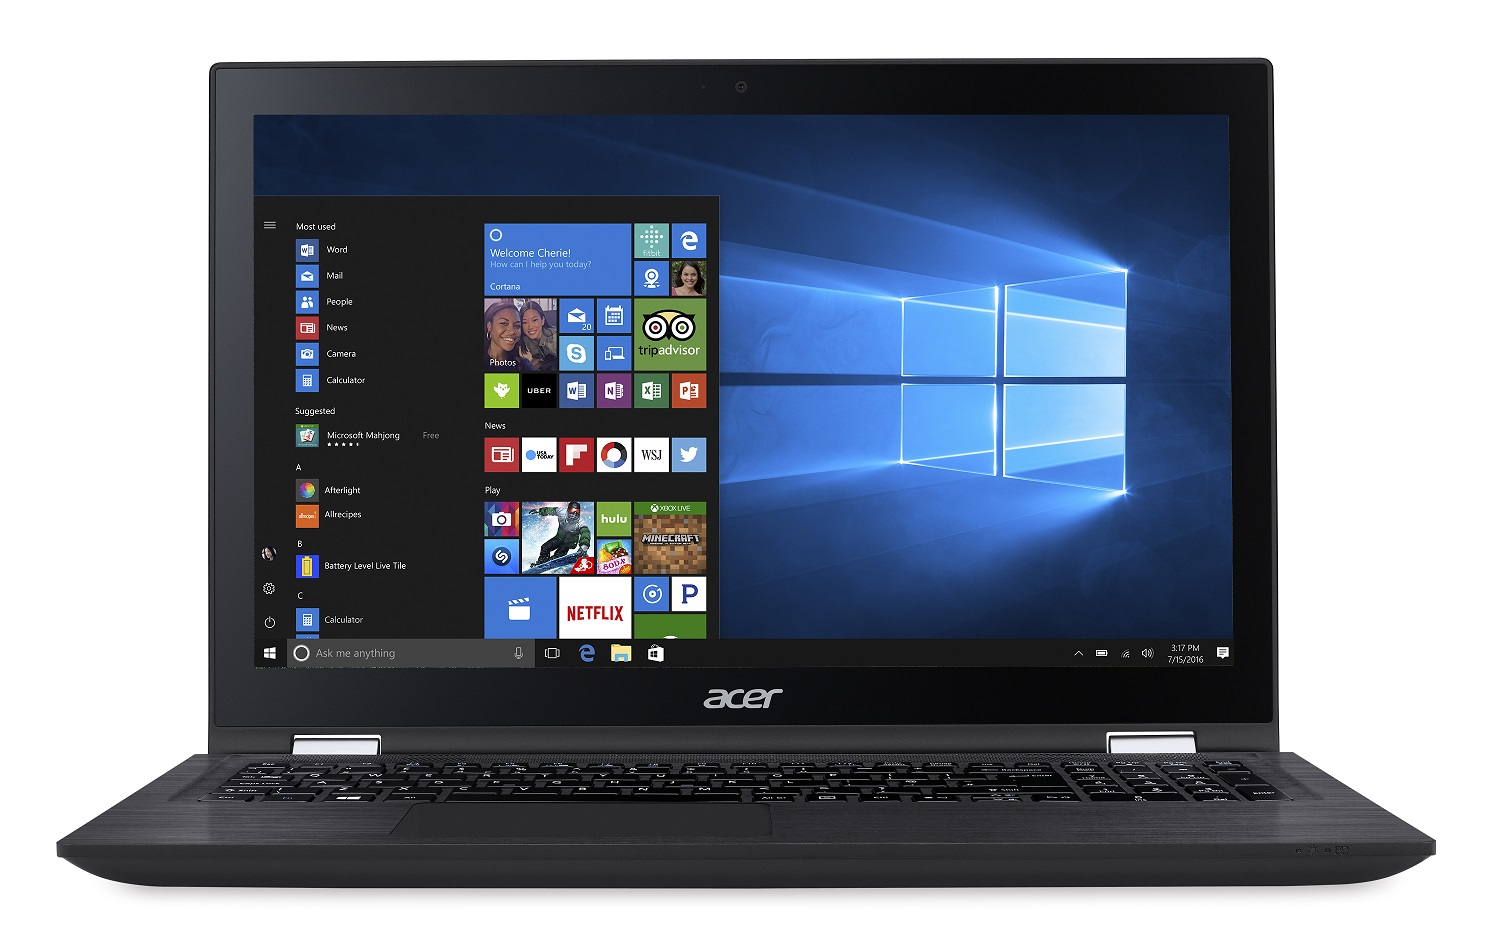 "Acer Spin 3 (SP315-51-507Q) i5-7200U/4GB OB+4GB/128GB SSD M.2+1T HDD/HD Graphics/15.6"" FHD Multi-Touch/W10 Home/Black"